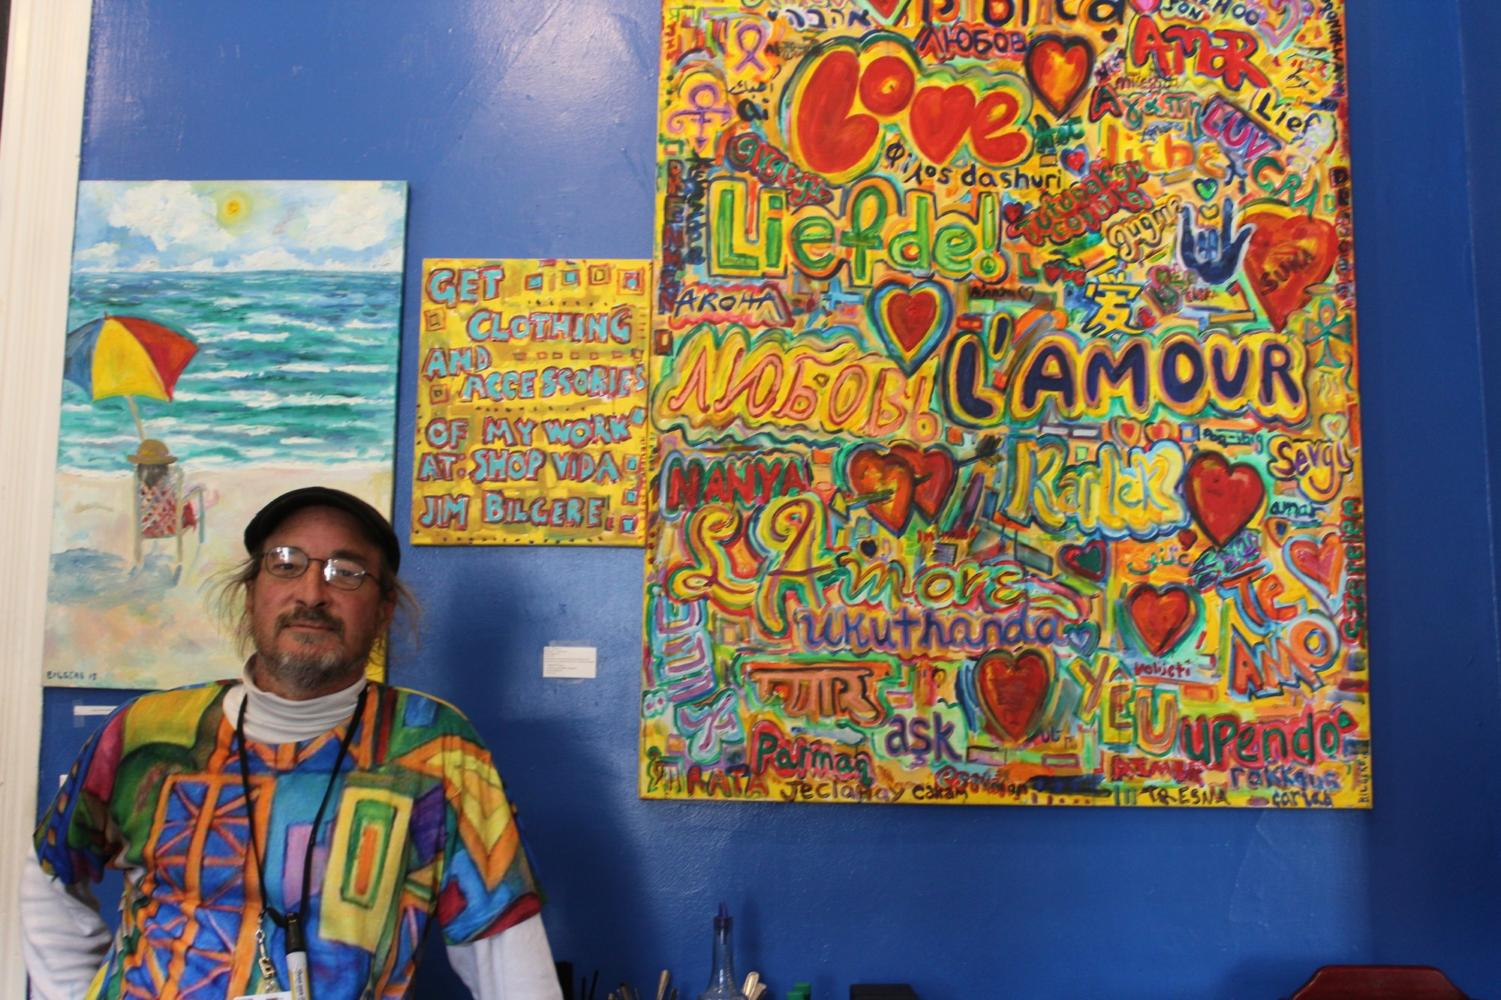 Artist Jim Bilgere poses in front of his paintings which are displayed on the walls of Café Luna. Photo credit: Catie Sanders